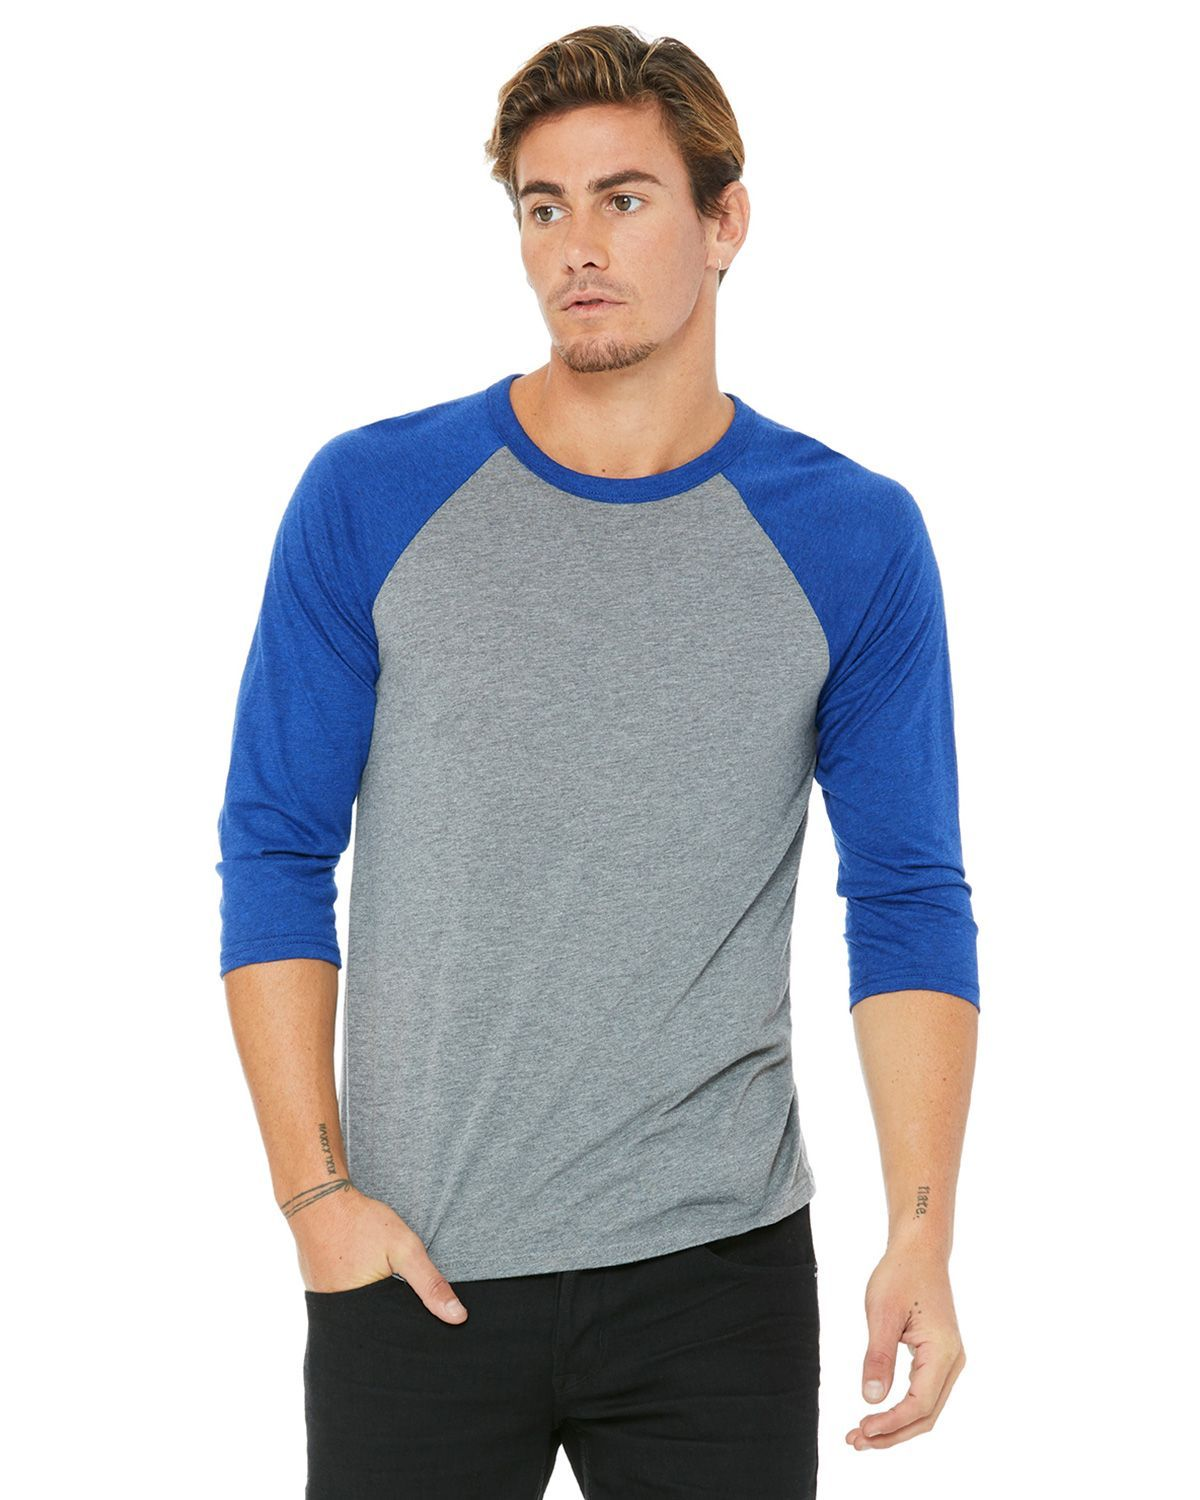 Bella + Canvas 3200 3/4 Sleeve Baseball Unisex T-Shirt - Grey/True Royal Triblend - XS from Bella + Canvas